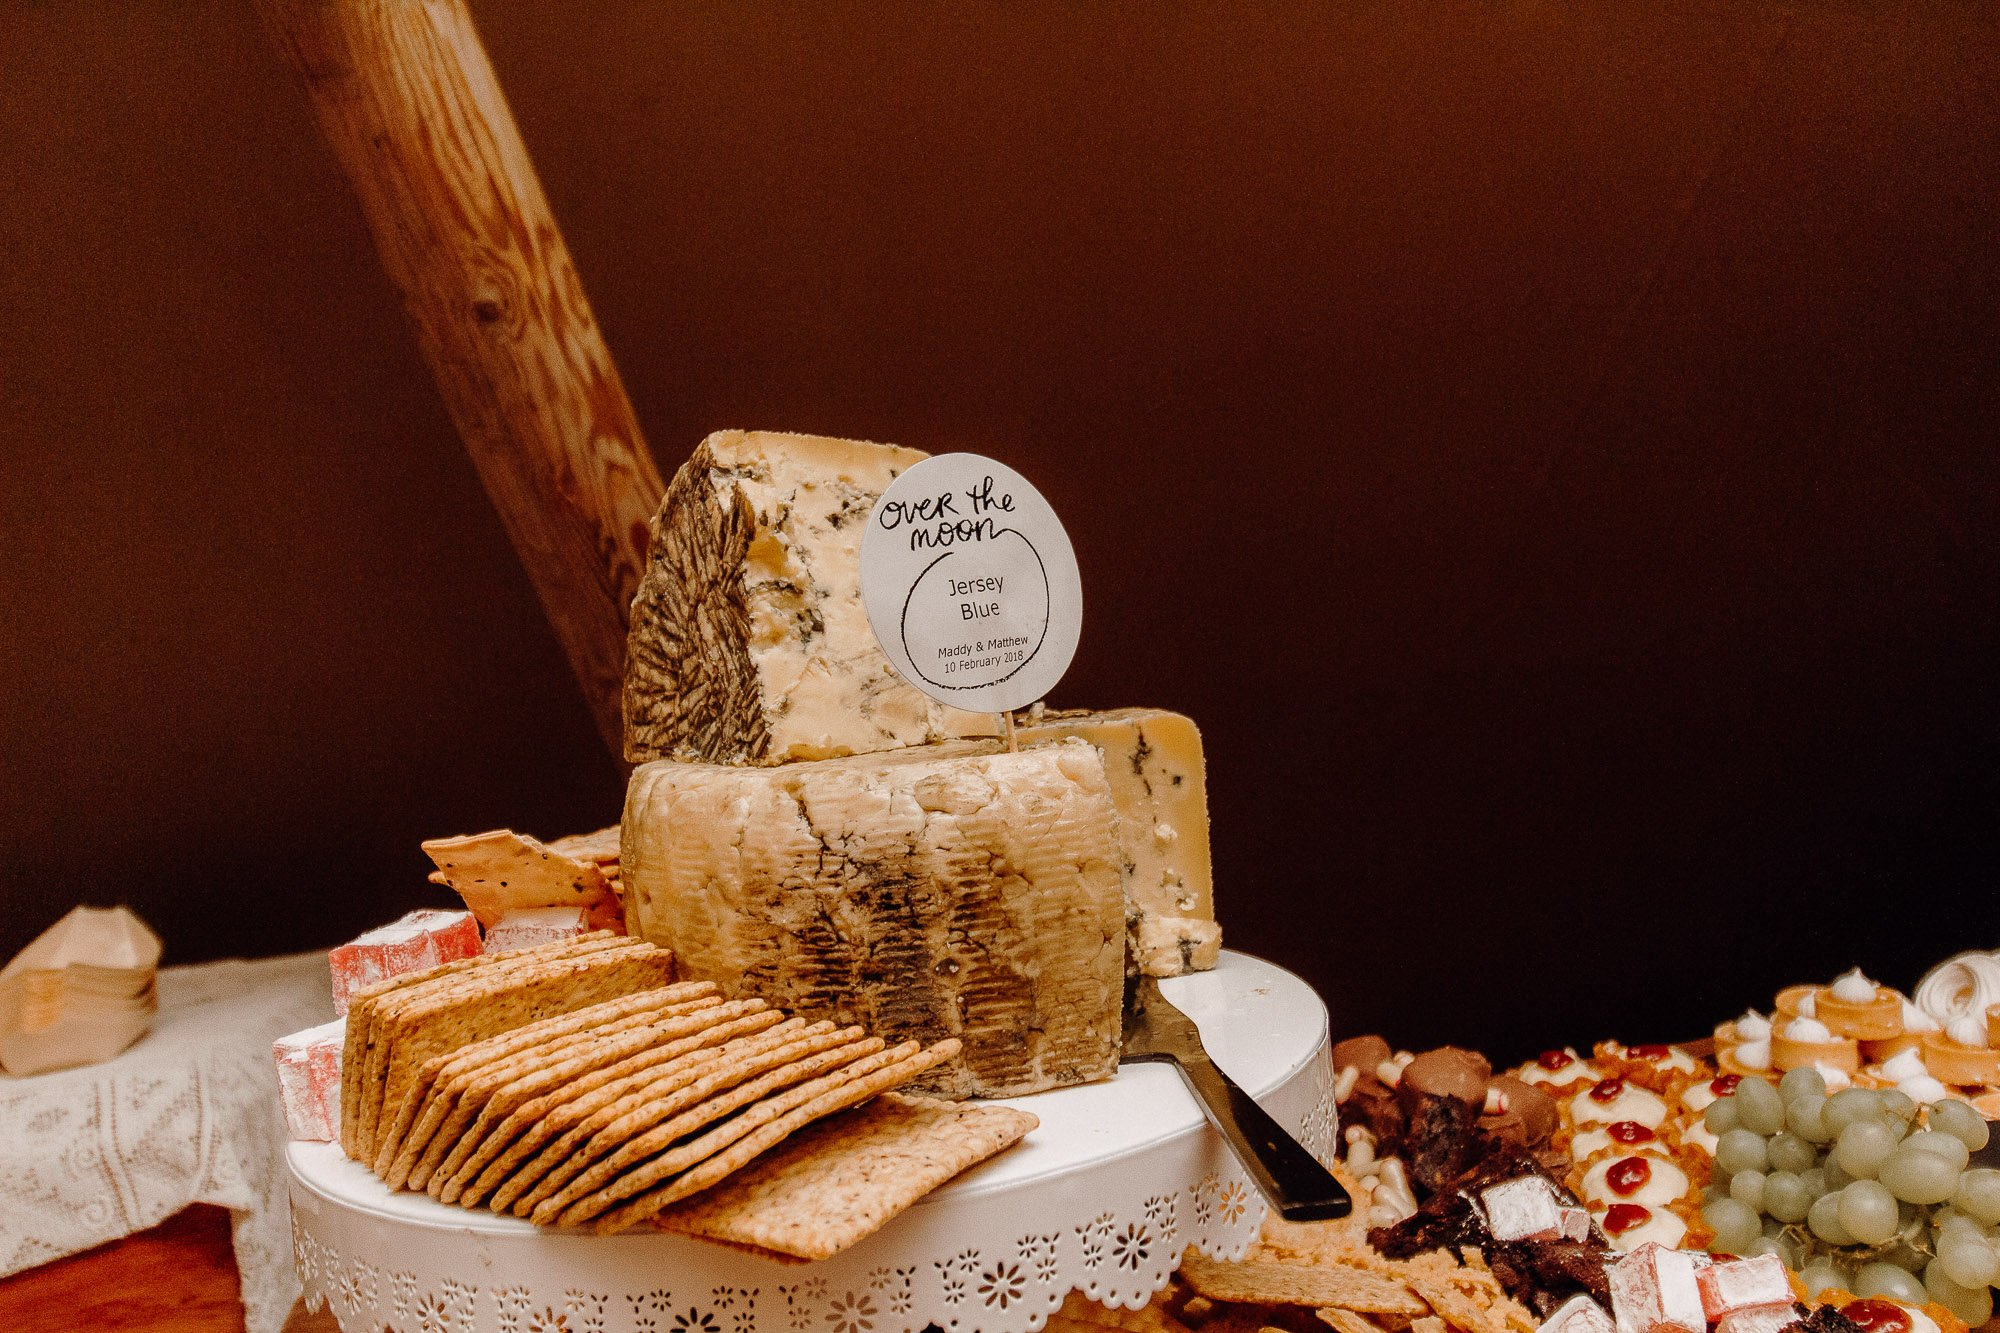 Wedding Photography Of Grazing Table Ideas 006. The multi tiers of cheese form the centre piece of this grazing table that is desert themed.